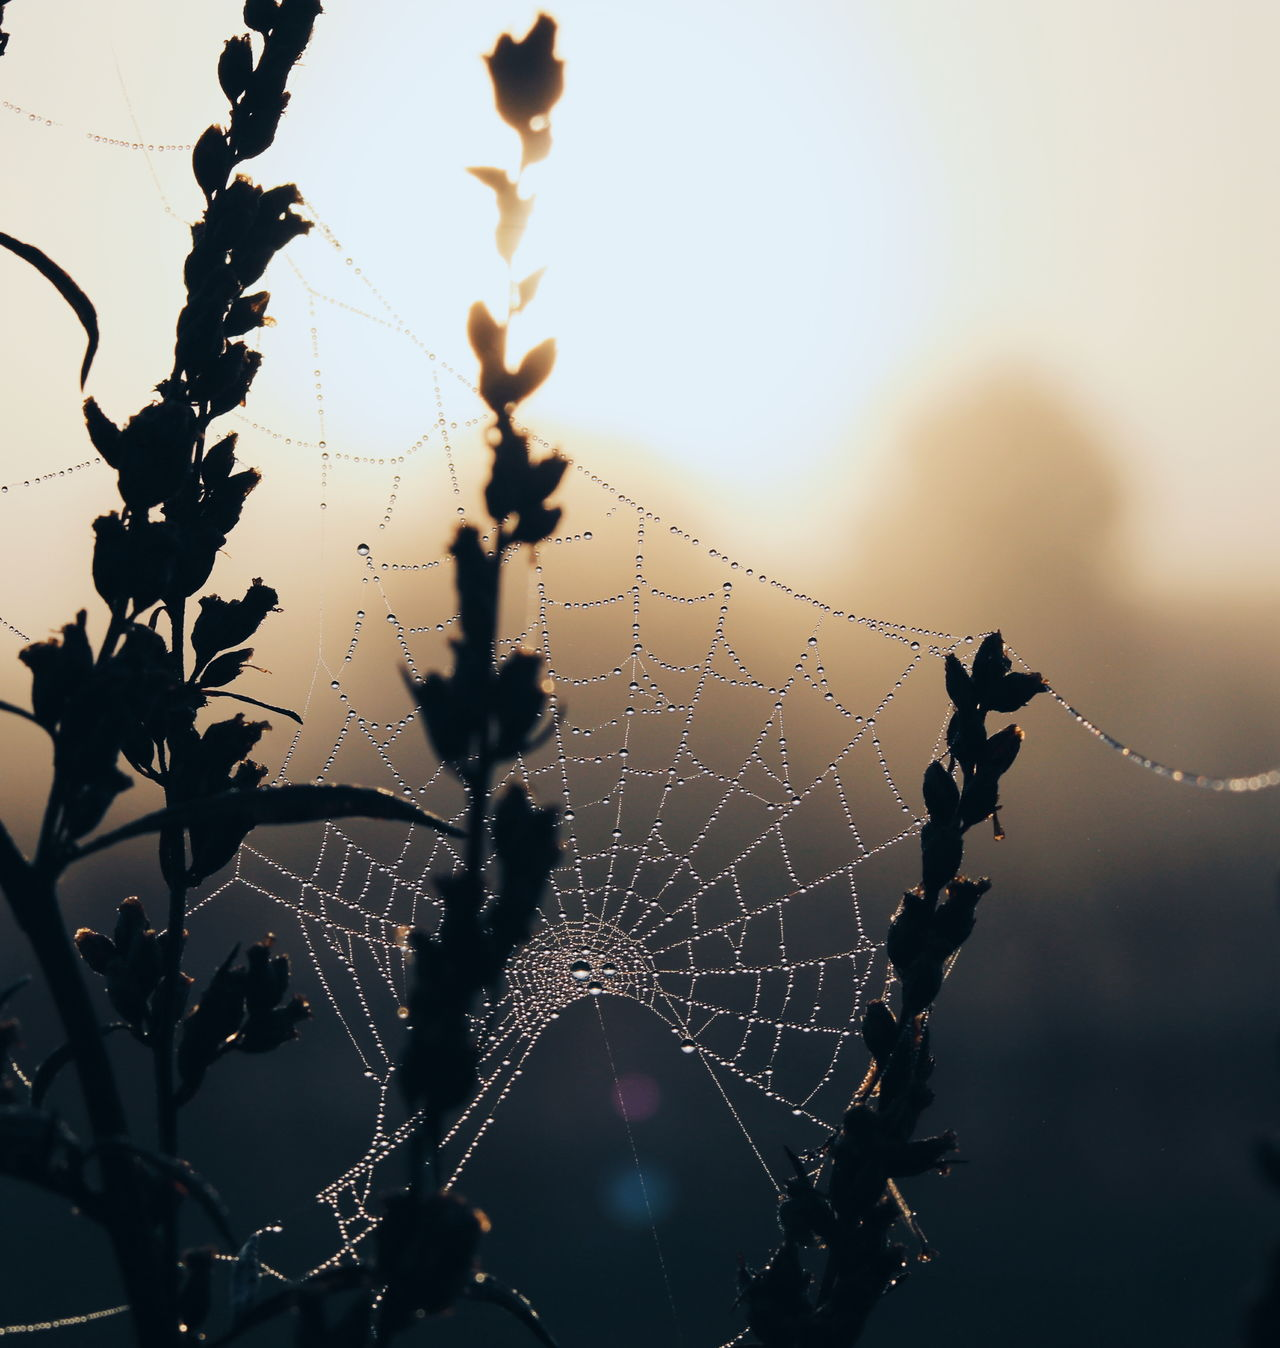 Drop Water Close-up Beauty In Nature Dew Silhouette Focus On Foreground Spider Web Autumn Natural Condition EyeEm Best Shots EyeEm Deutschland Eye4photography  EyeEm Nature Lover Fog Outdoors Sunlight Tranquil Scene Landscape Beauty In Nature